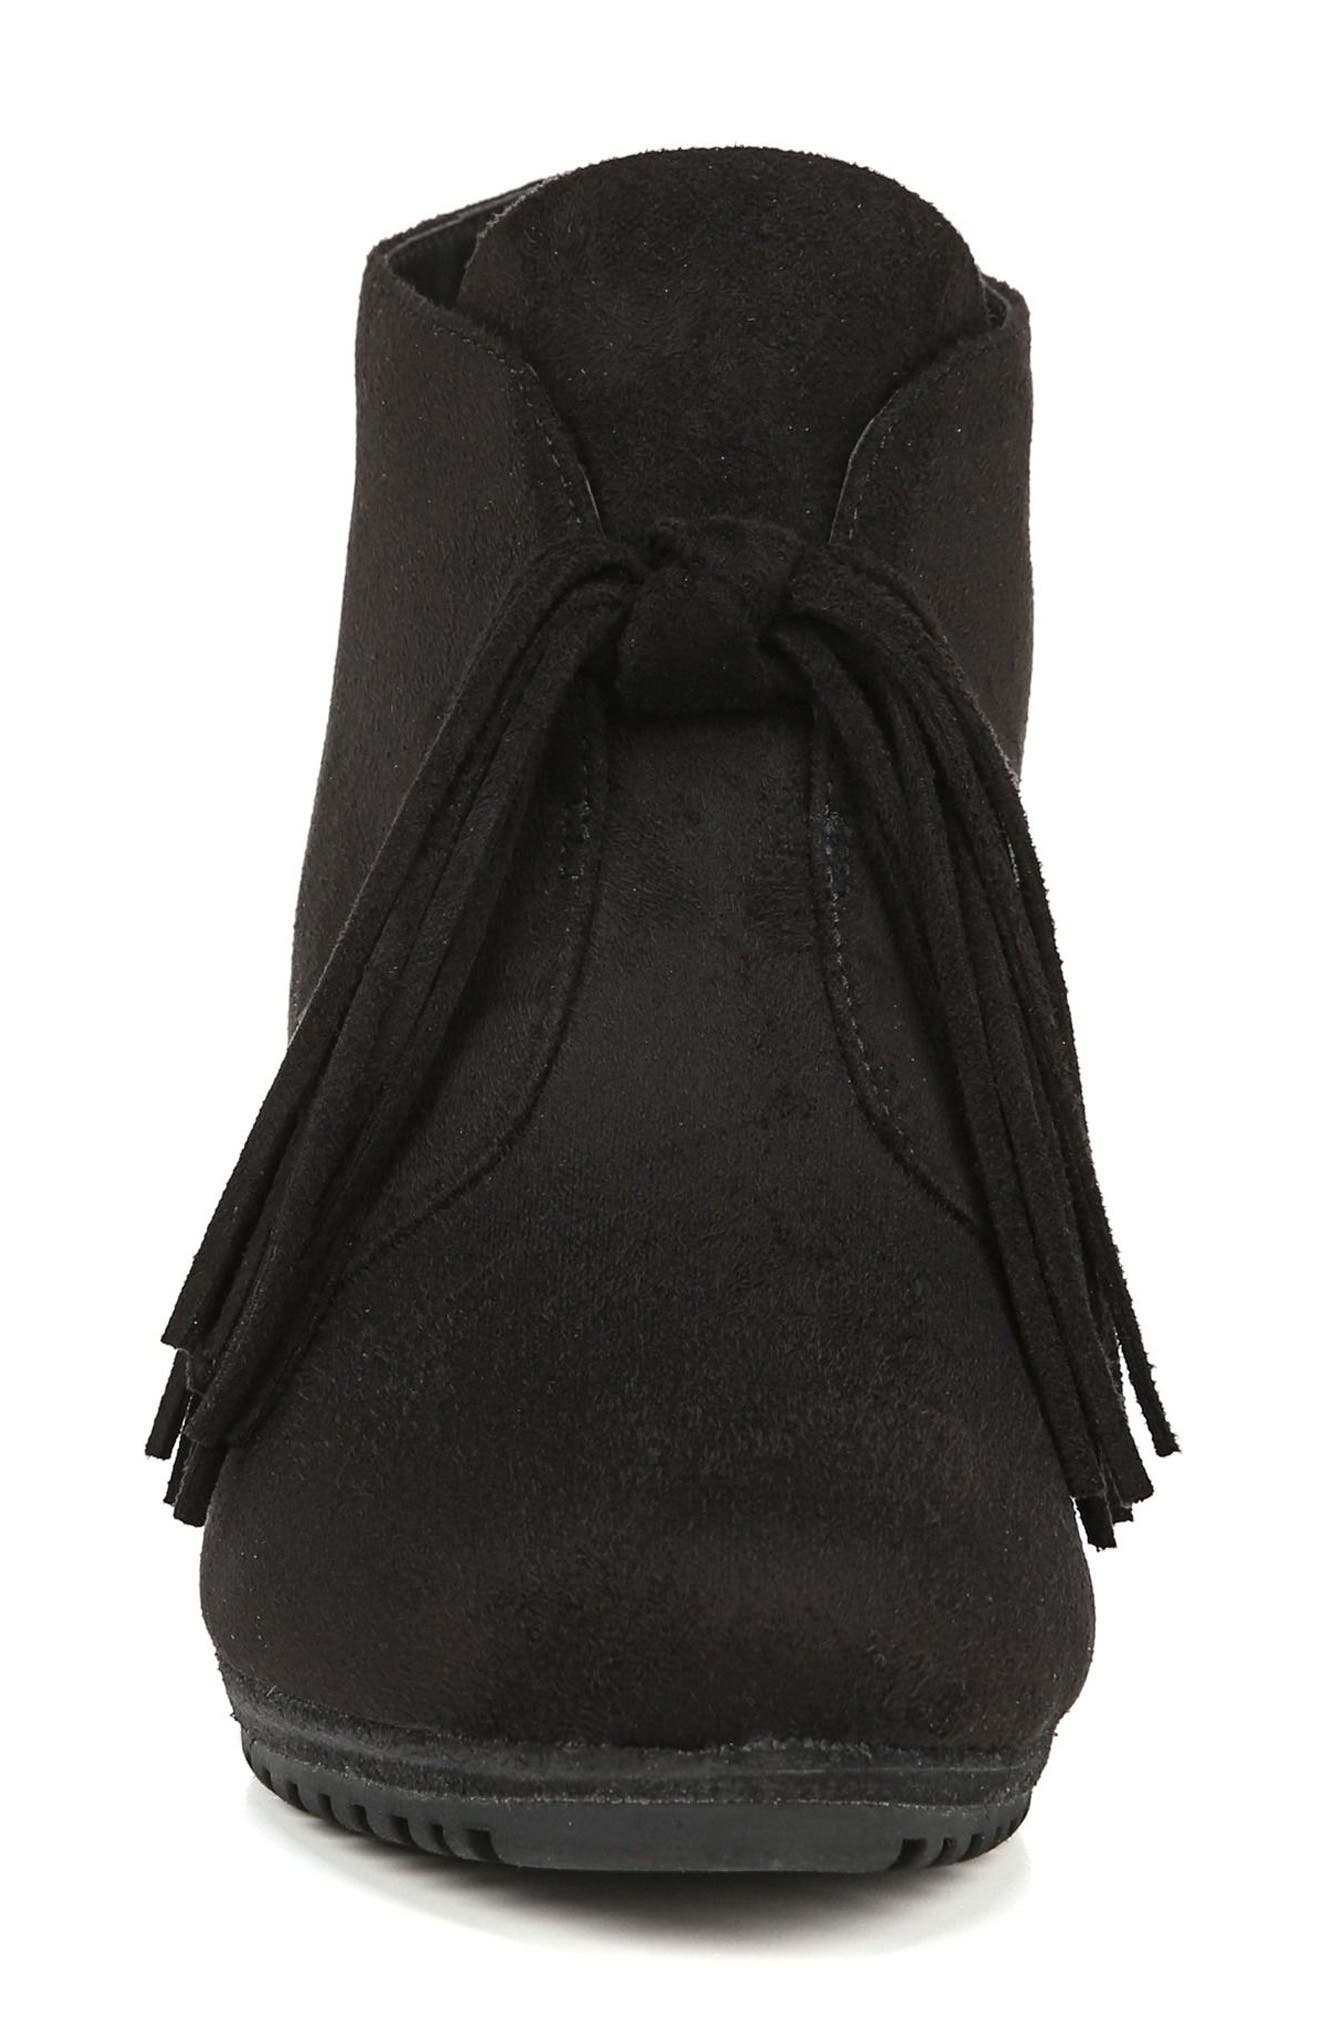 Classify Tassel Wedge Bootie,                             Alternate thumbnail 3, color,                             BLACK FABRIC